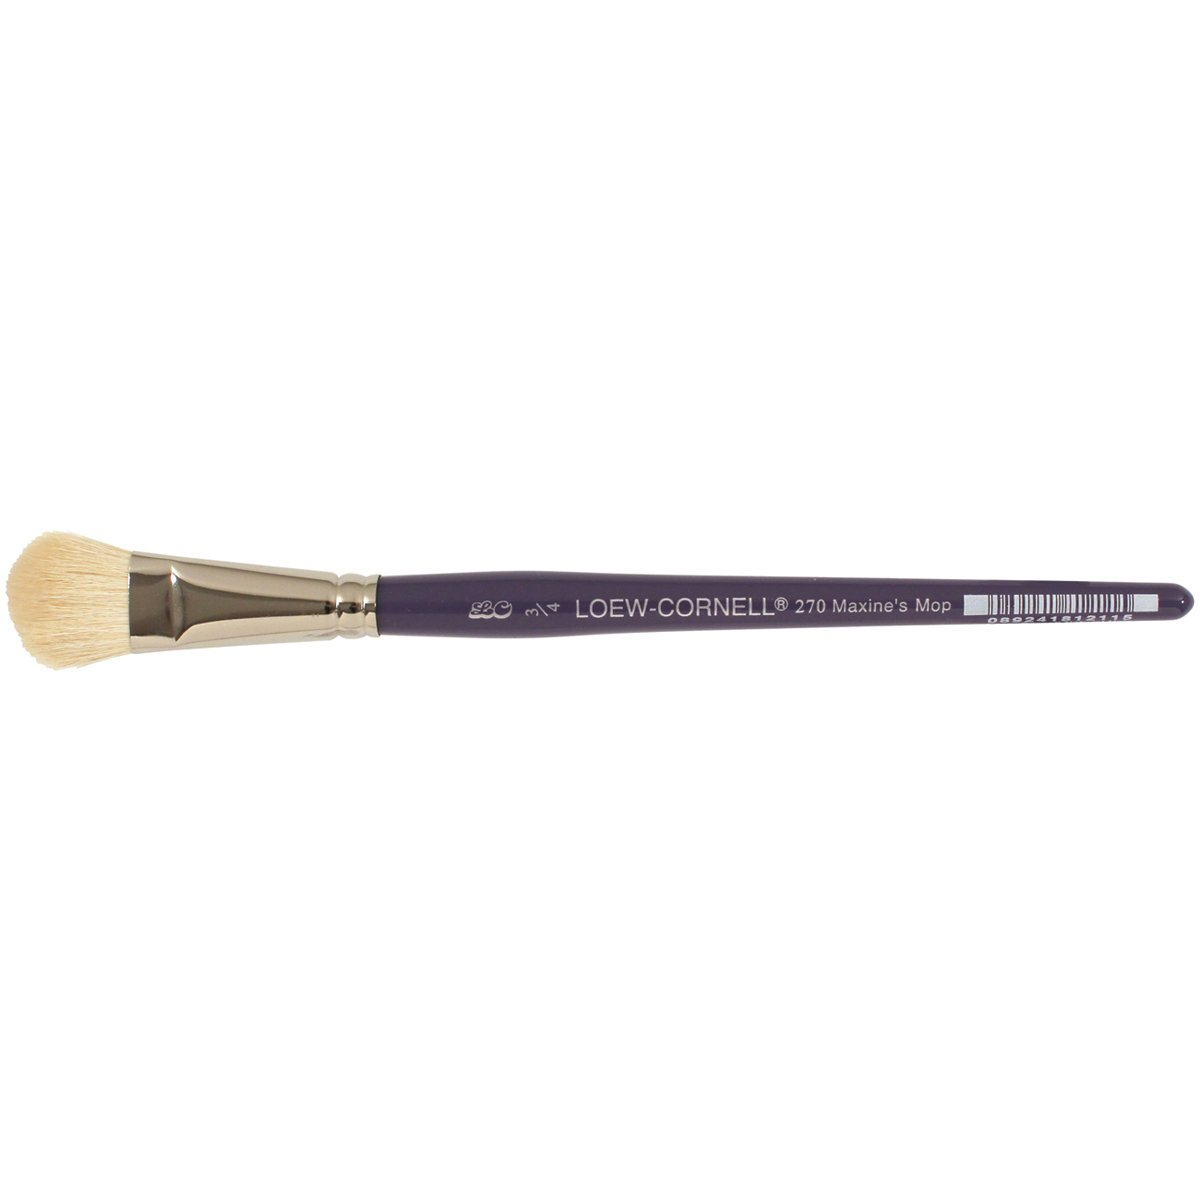 Loew-Cornell 3/4-Inch 270 Maxine Thomas Mop Artist Brush, Goat Hair by Loew-Cornell